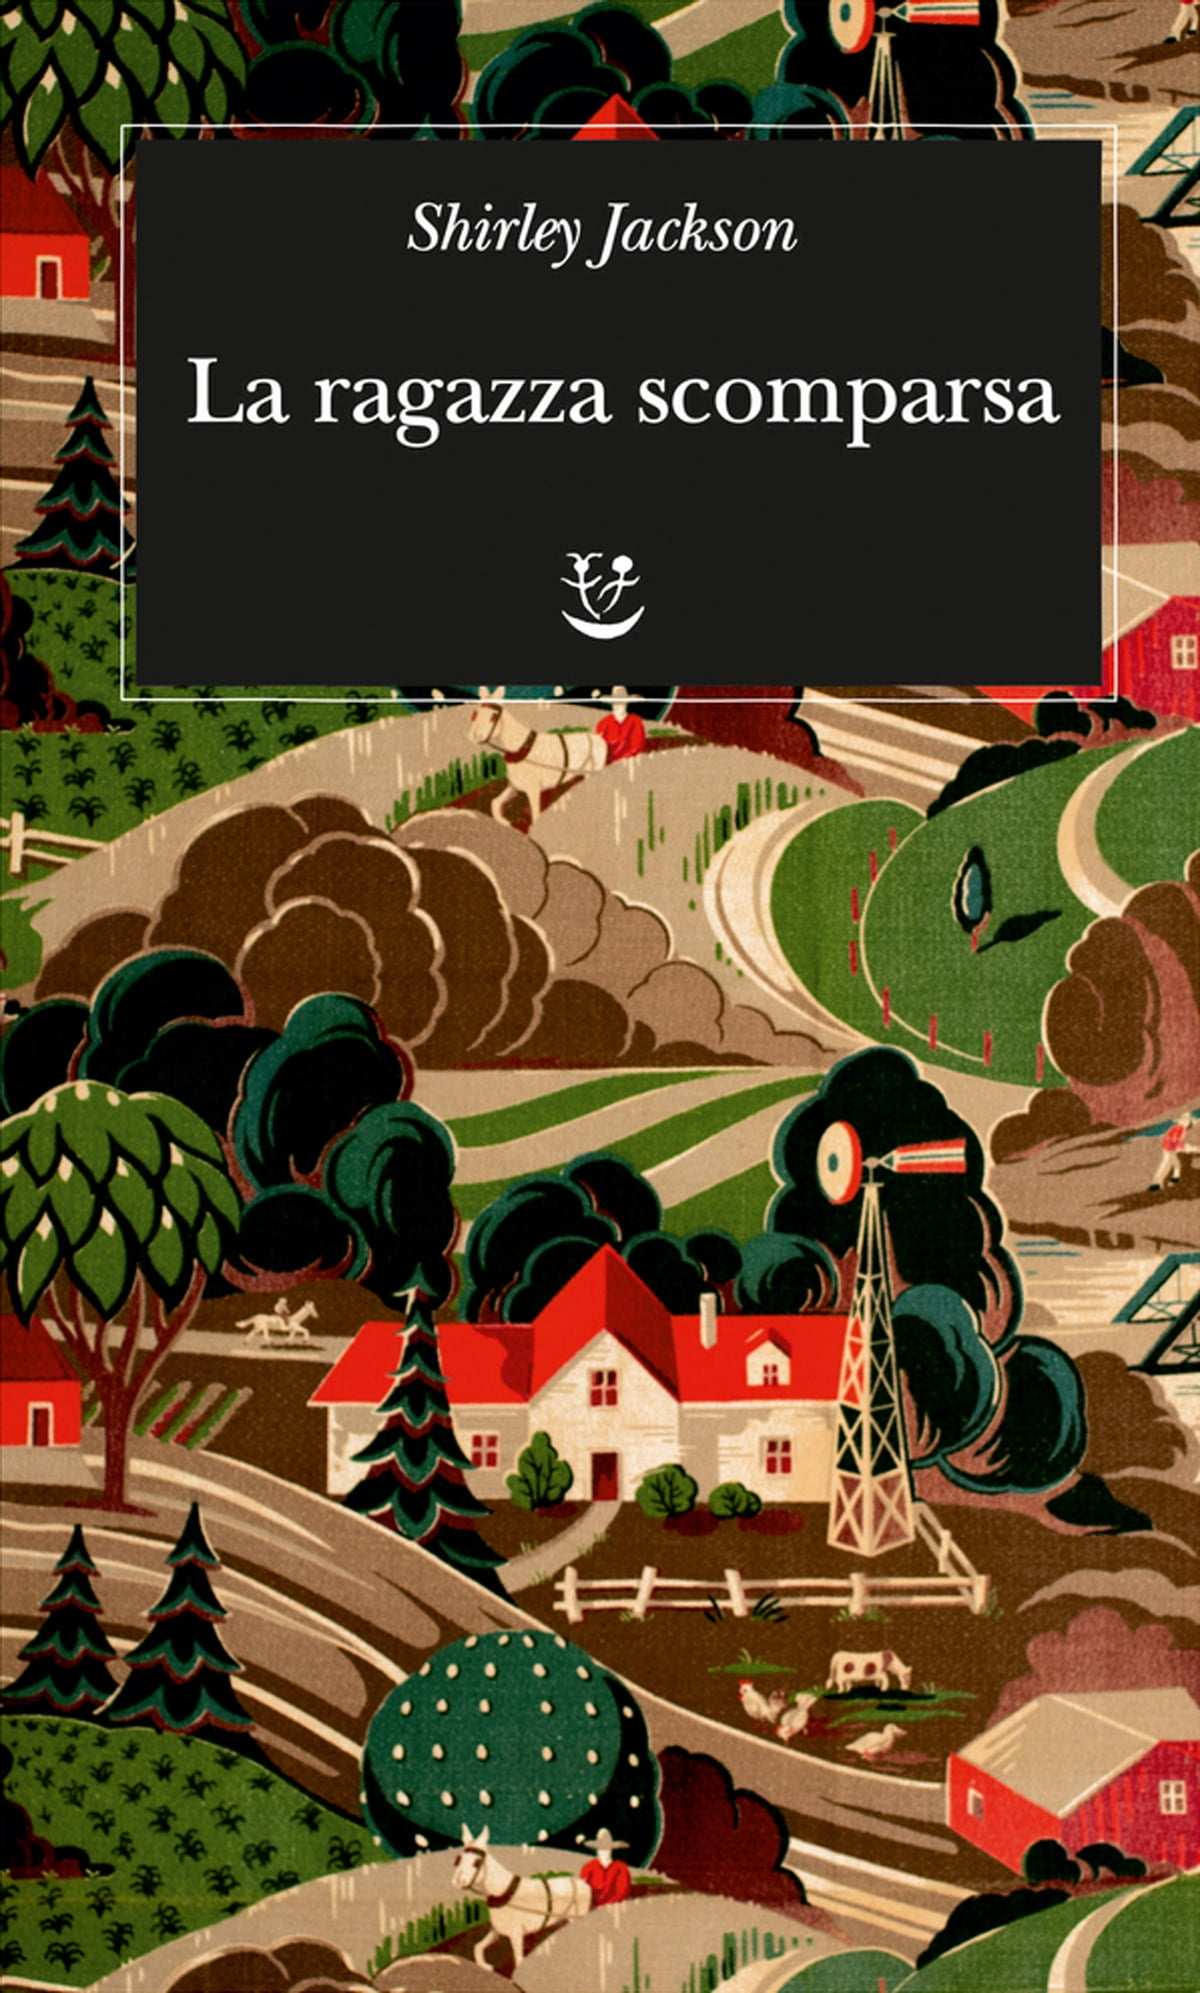 La Ragazza Scomparsa Ebook By Shirley Jackson 9788845980589 Rakuten Kobo United States